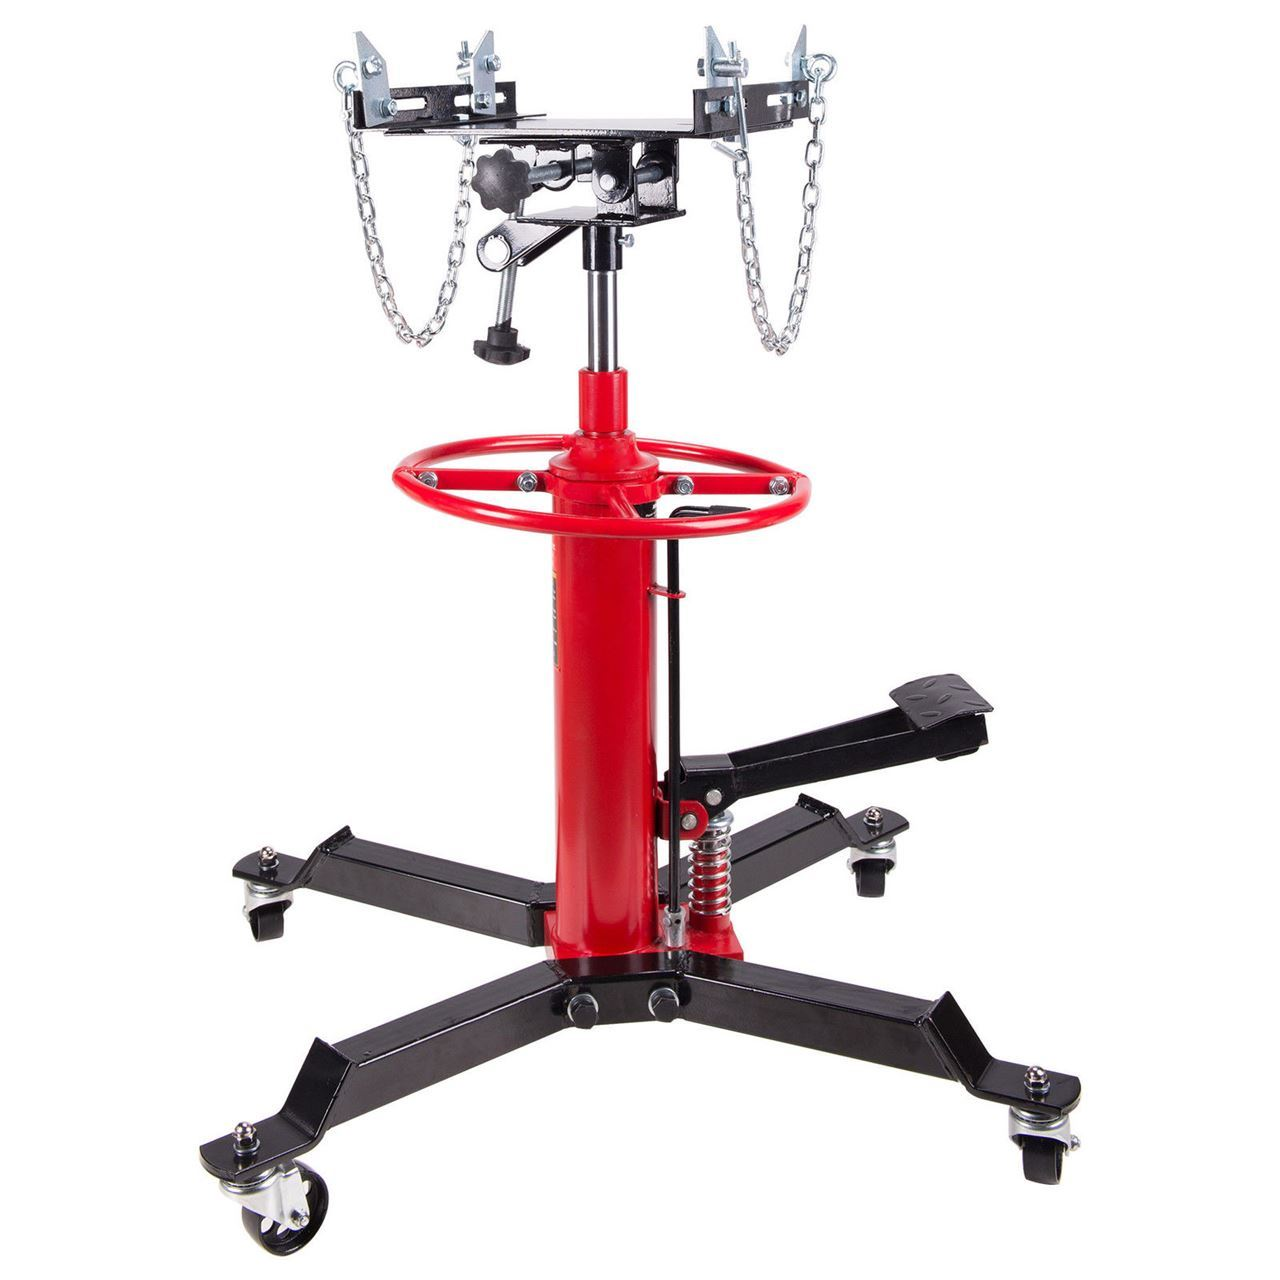 2 Stage Hydraulic Transmission Jack 1100 lbs with 360° Swivel Wheels Lift Hoist